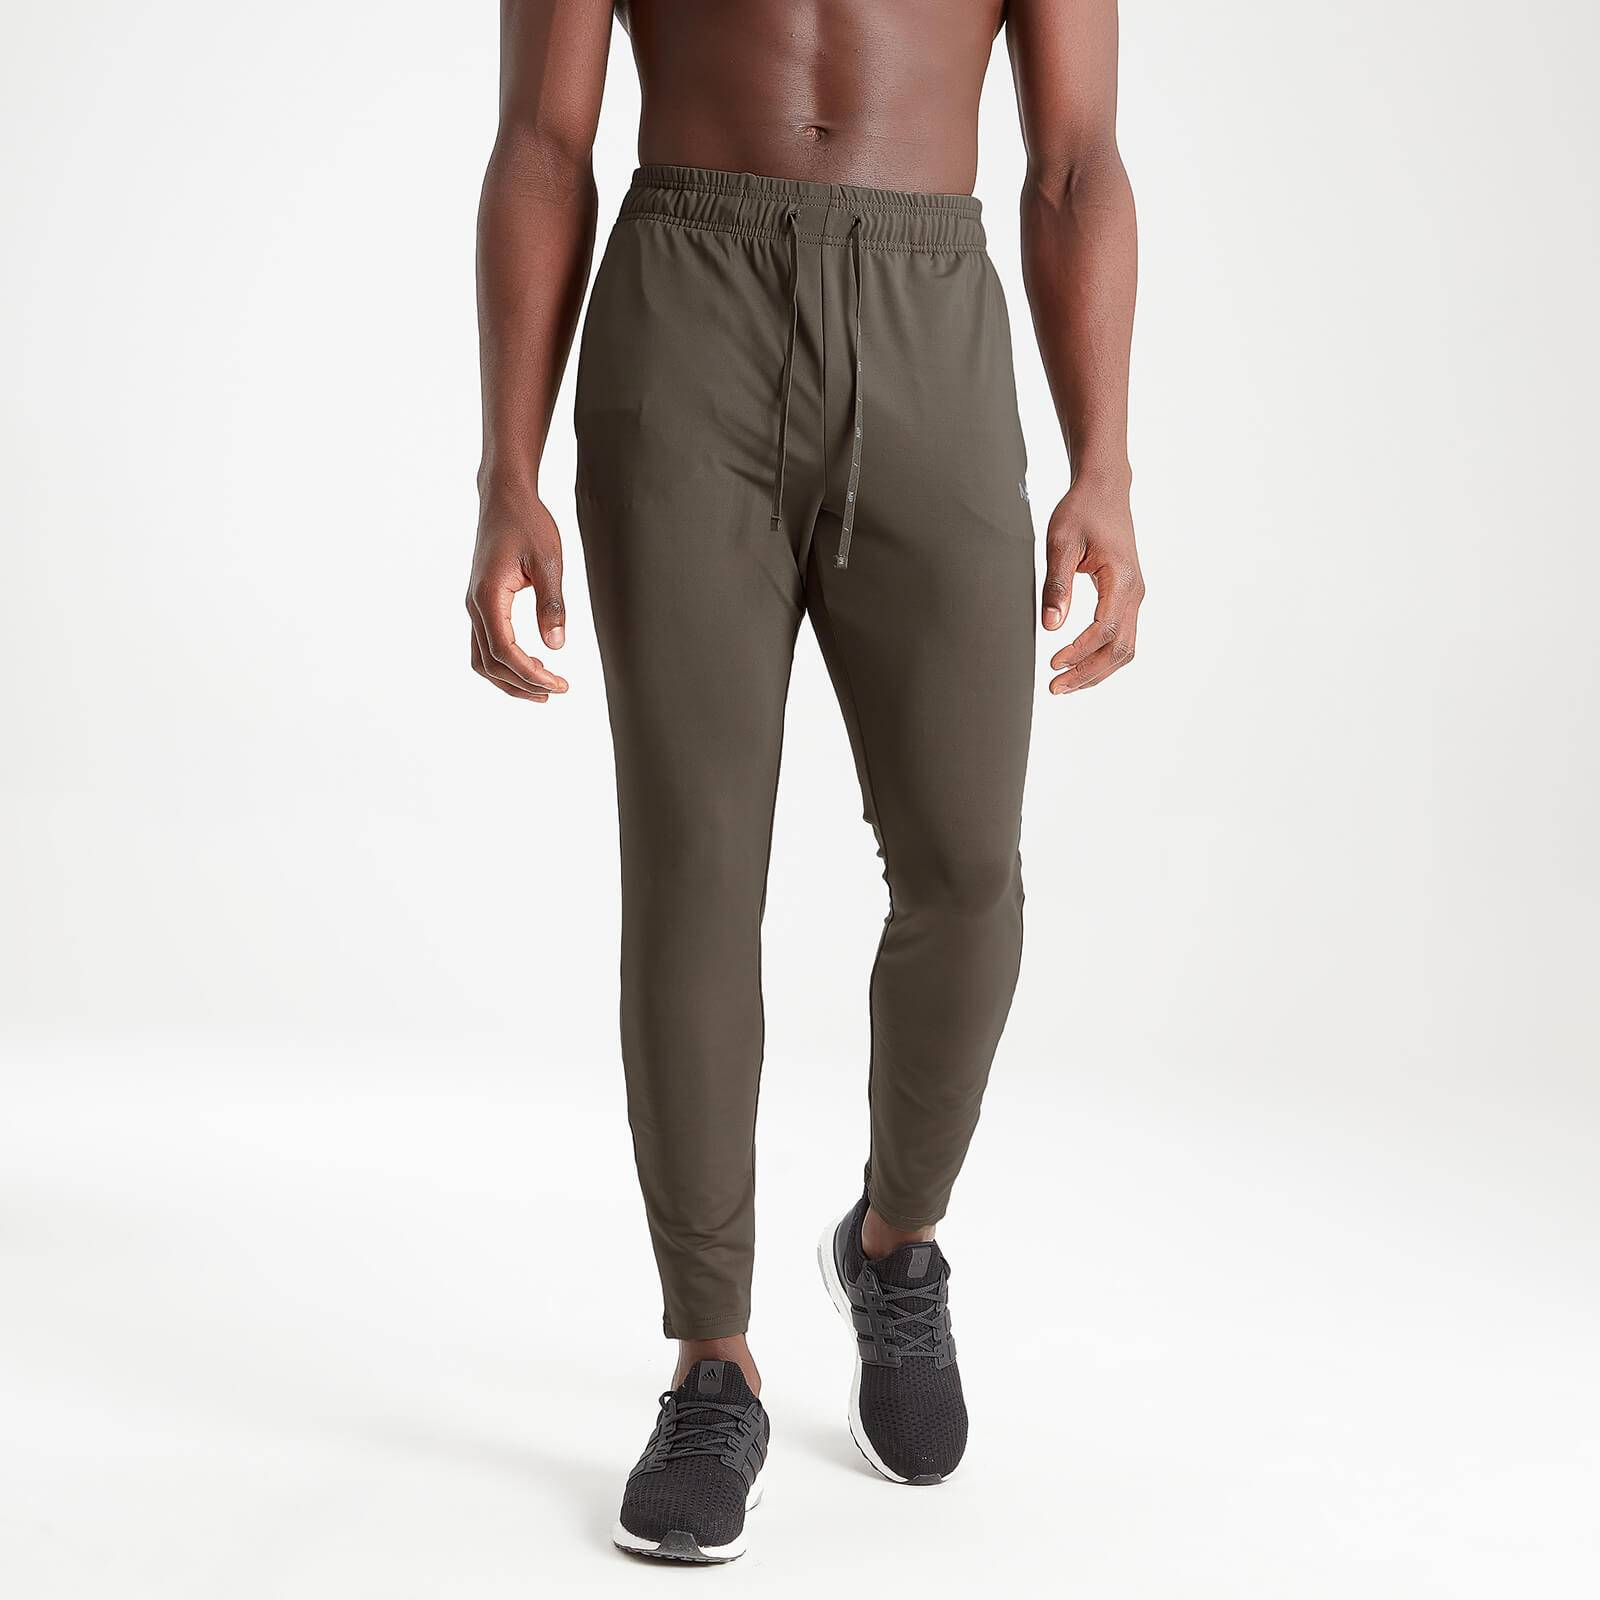 Mp Men's Essential Training Joggers- Dark Olive - XS